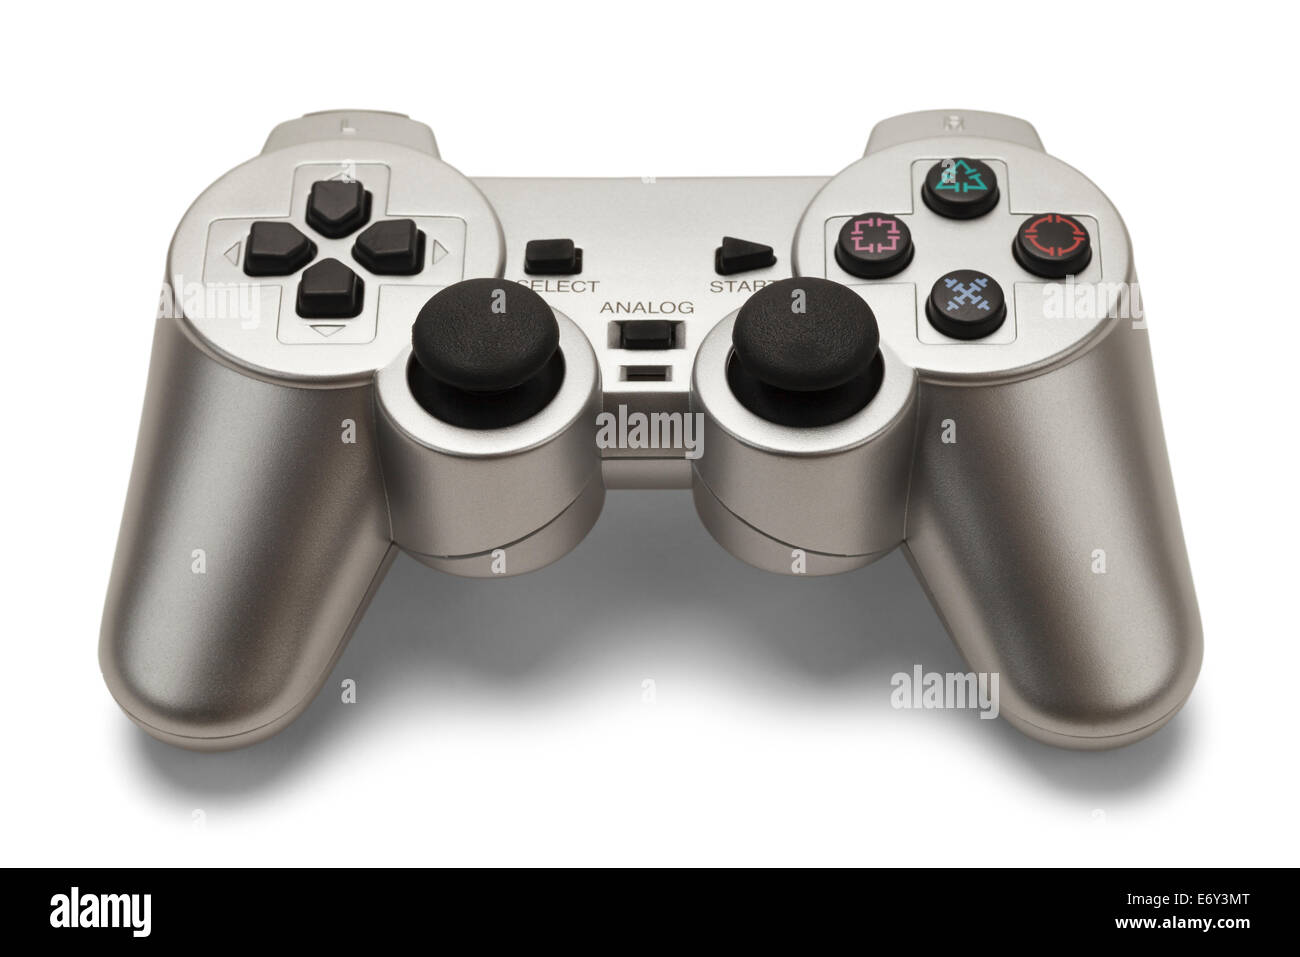 Silver Hand Held Game Controller Isolated on White Background. - Stock Image